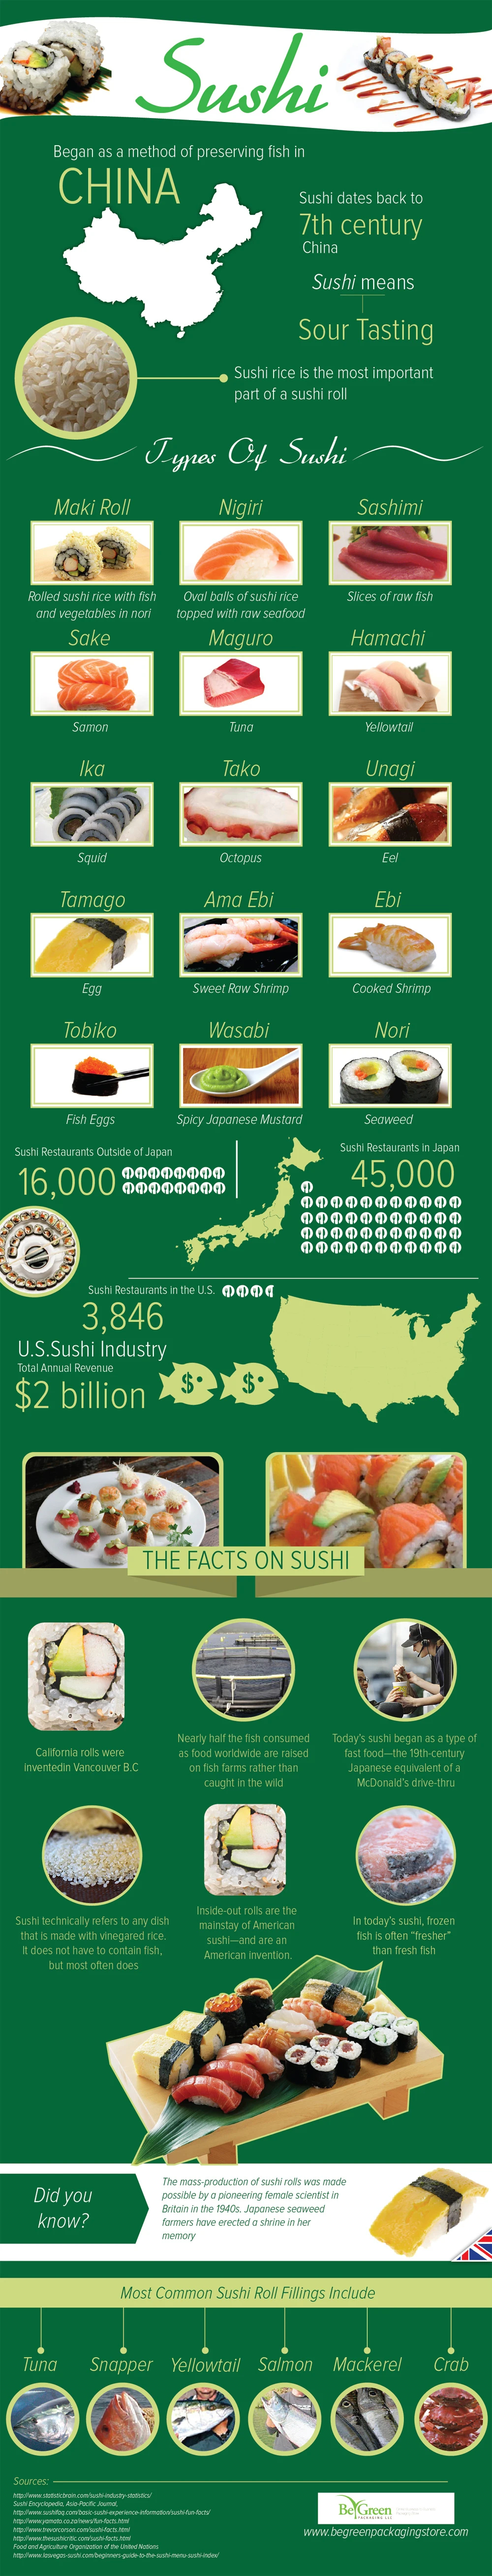 All About Sushi